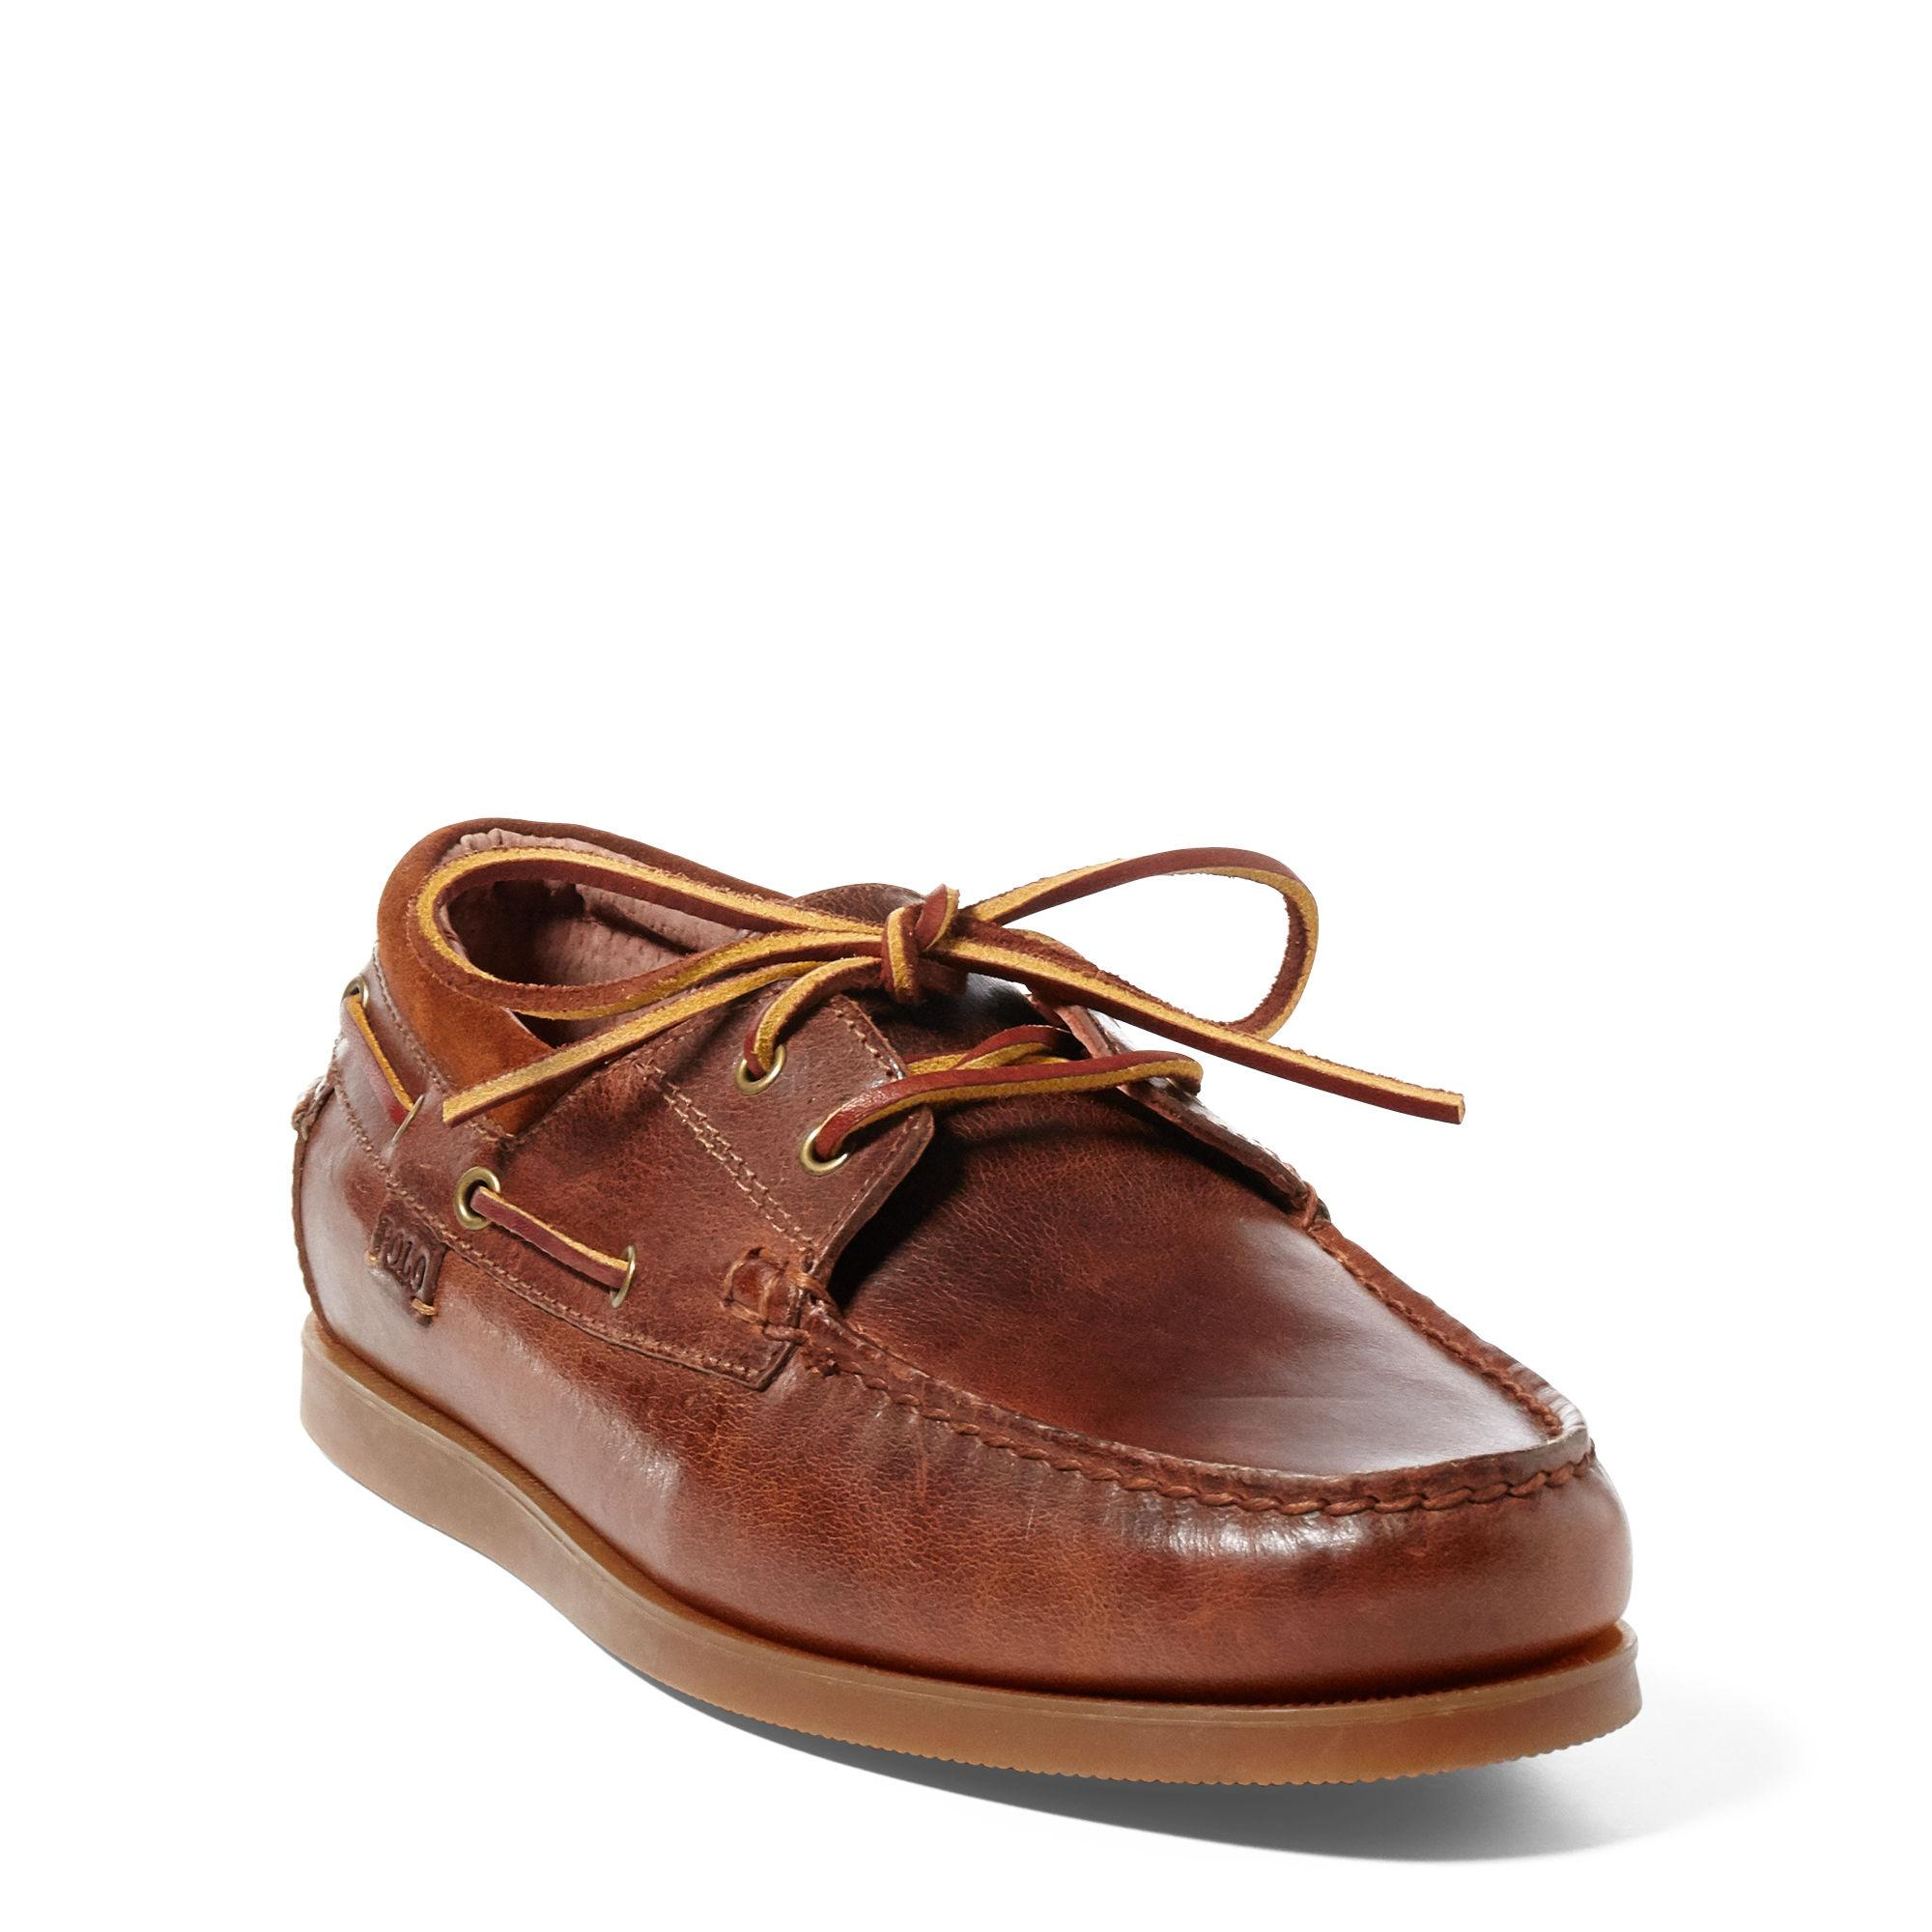 Polo Ralph Lauren Dayne Classic Leather Boat Shoes